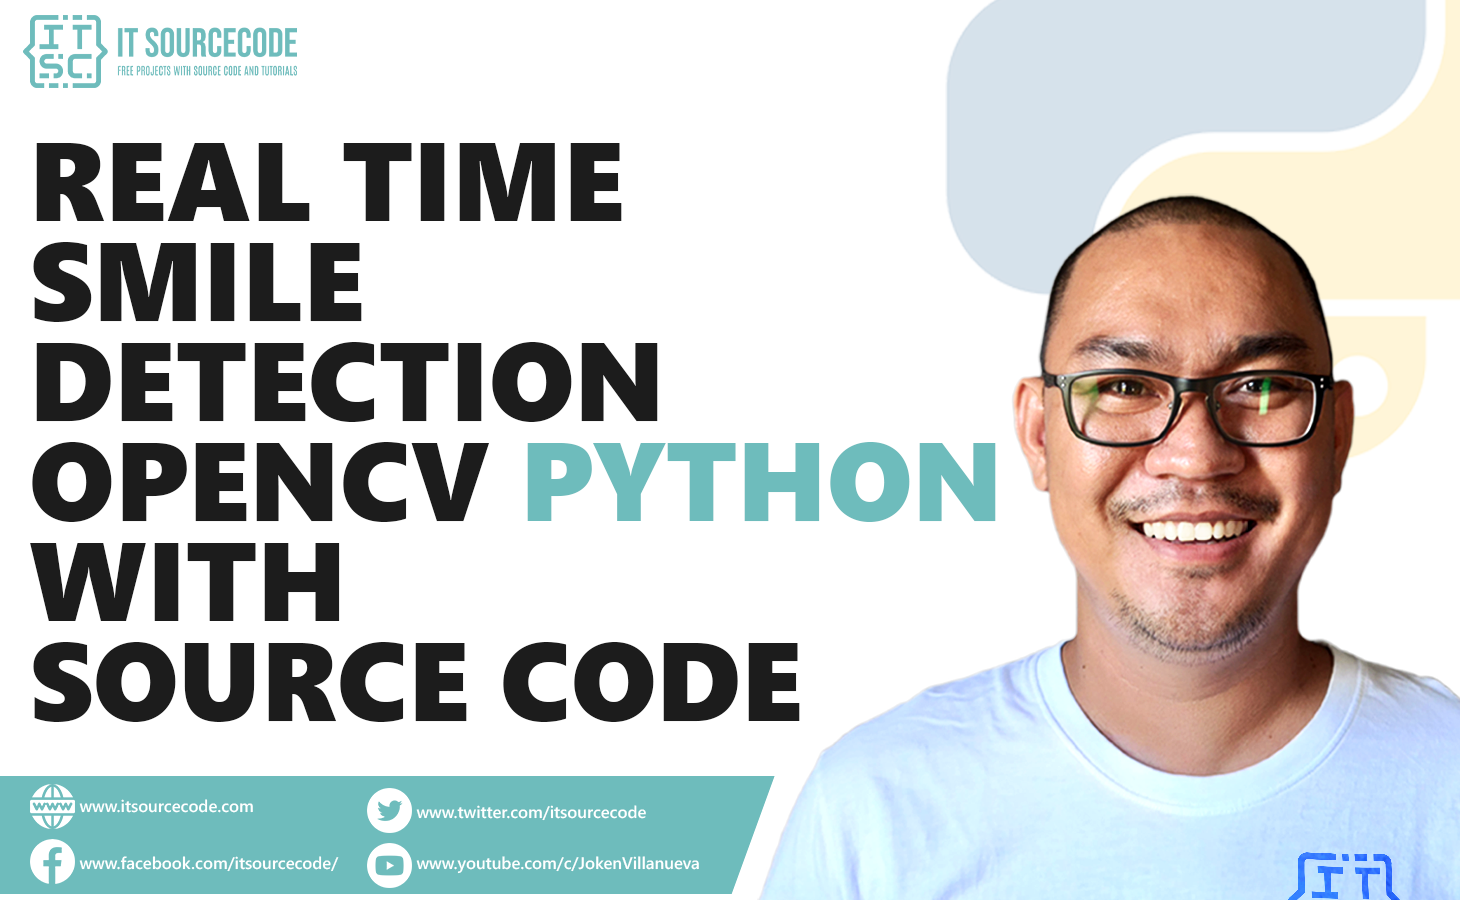 Real-Time Smile Detection OpenCV Python With Source Code